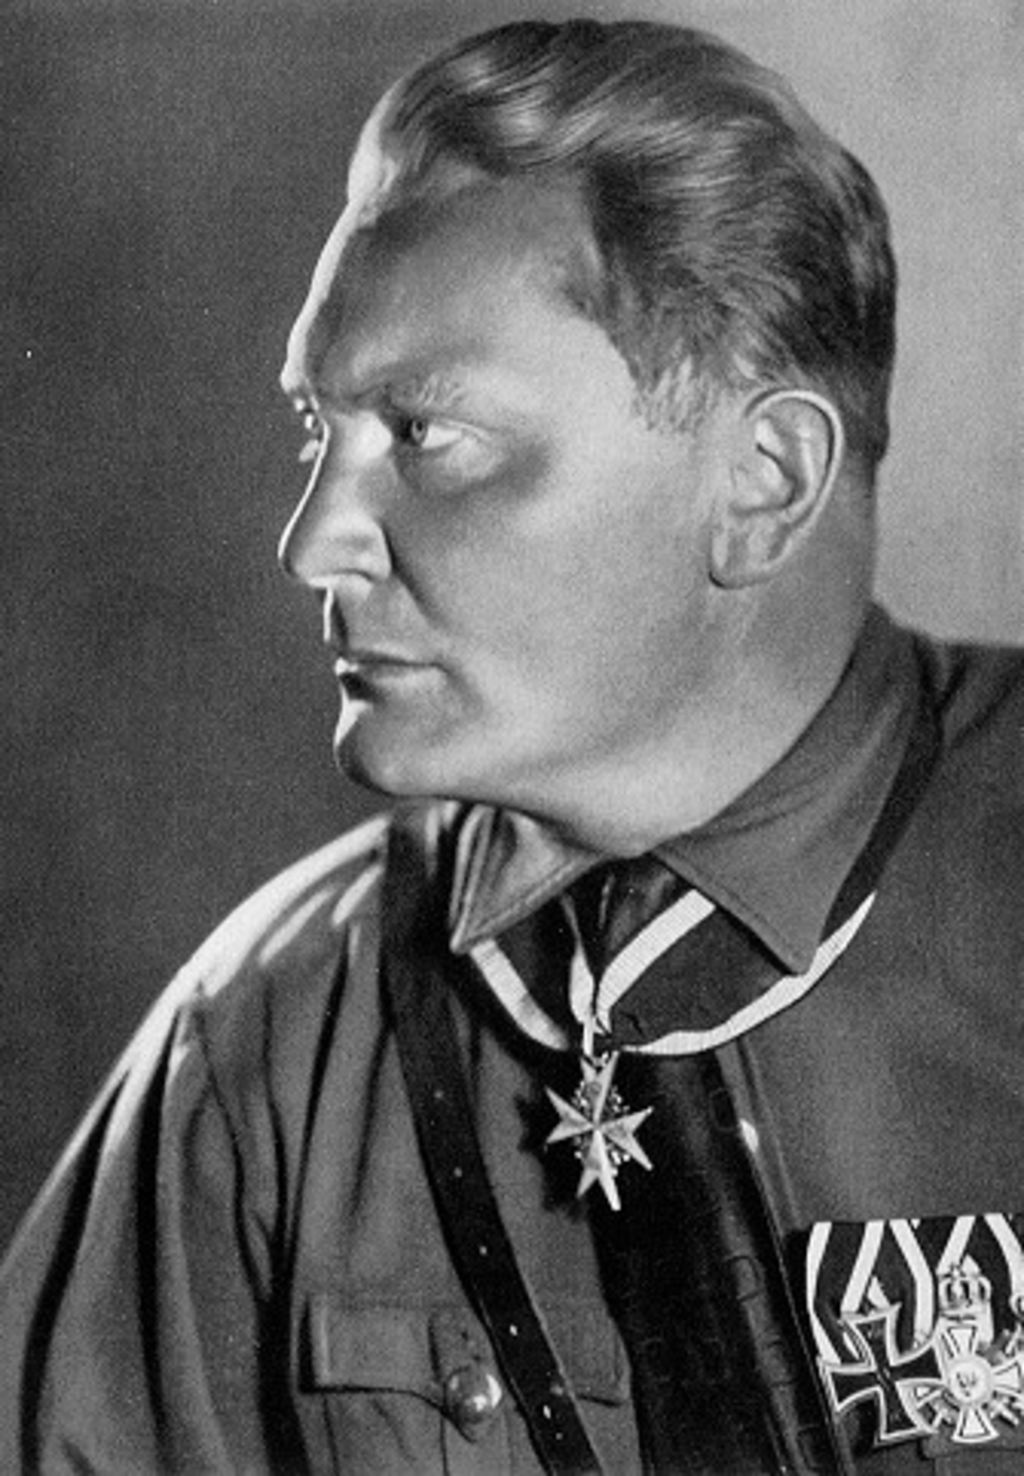 Exponat: Photo: Göring, Hermann